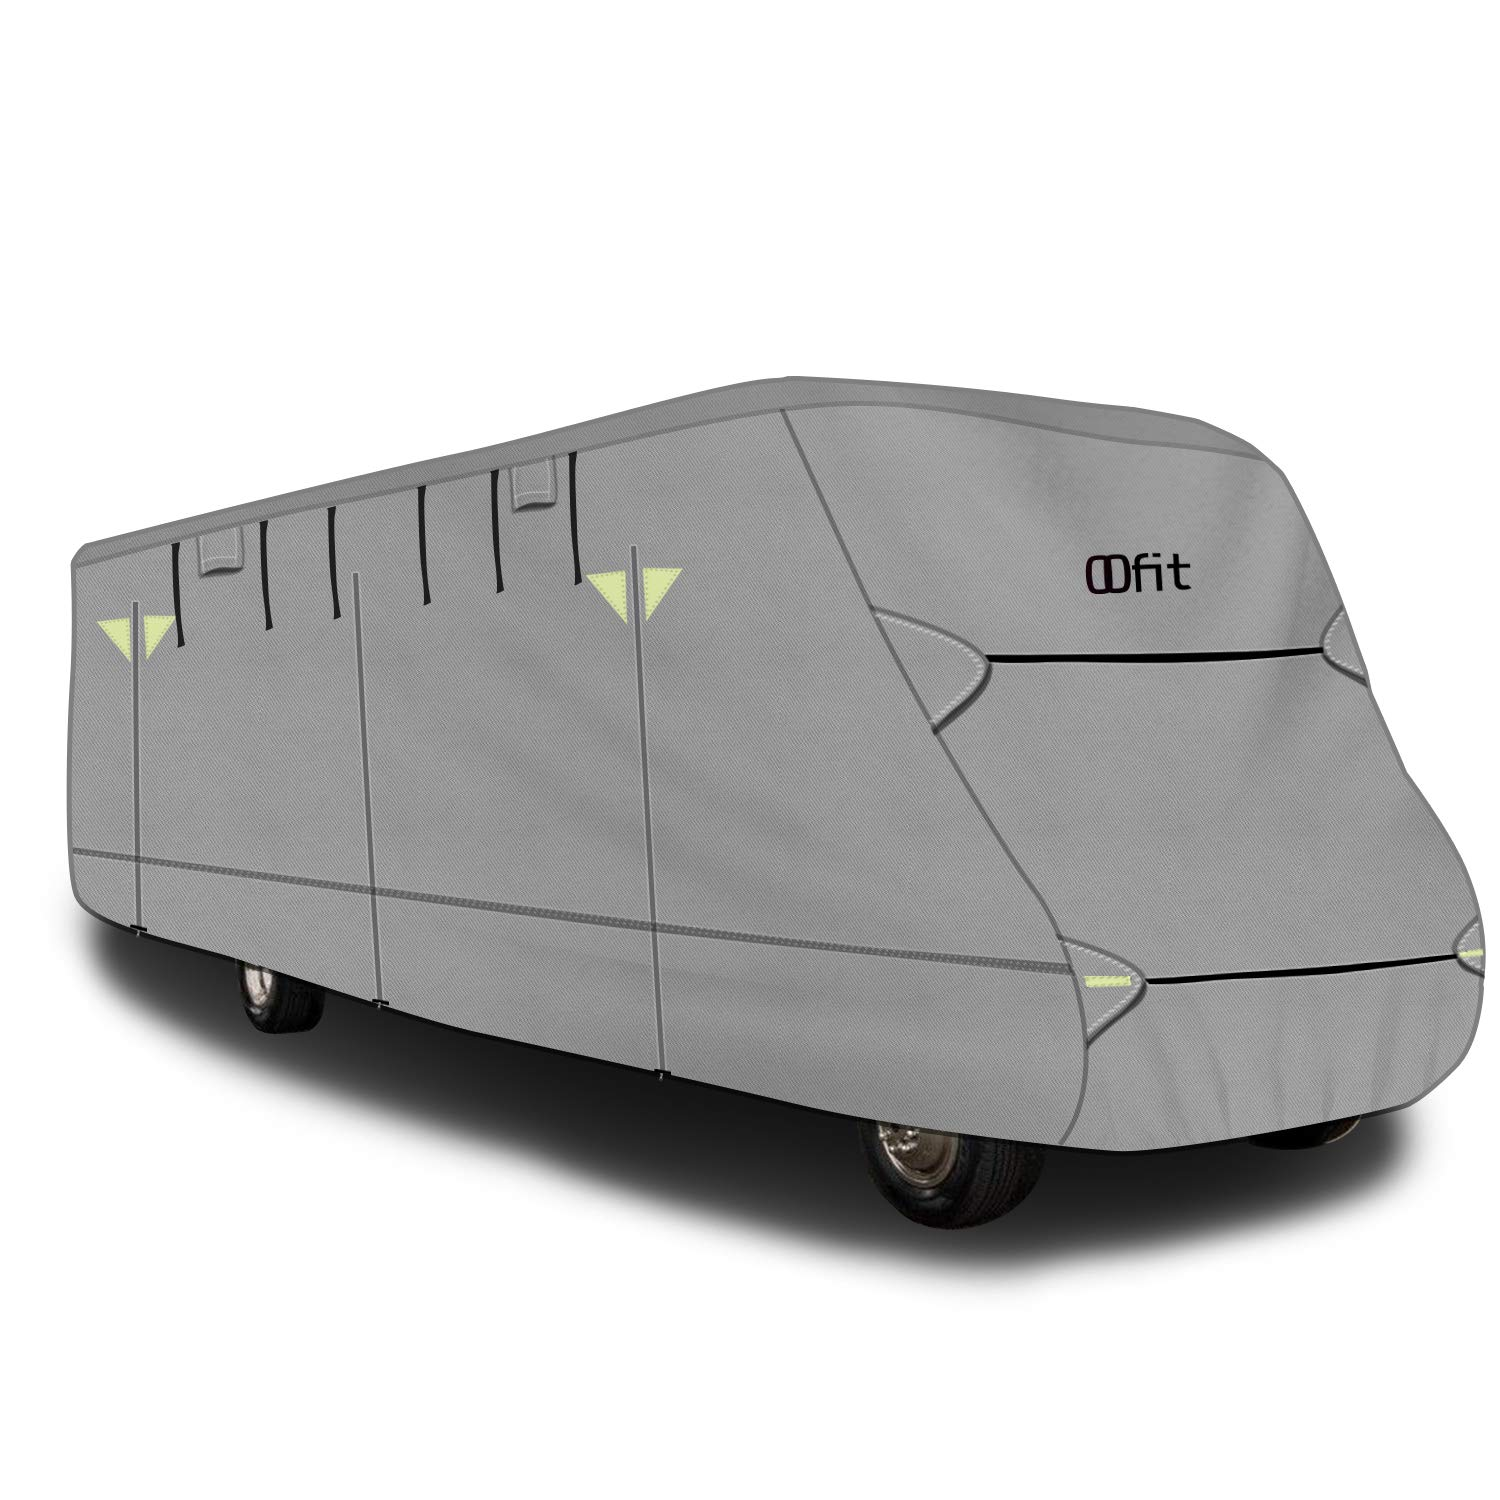 OOFIT Extra-Thick 4-ply Class C Motorhome RV Cover, Fits 29' - 32' RVs, Breathable Weather-Proof, Anti-UV Motorhome Cover with Adhesive Repair Patch, Entrance Zippers & Storage Bag by OOFIT (Image #1)